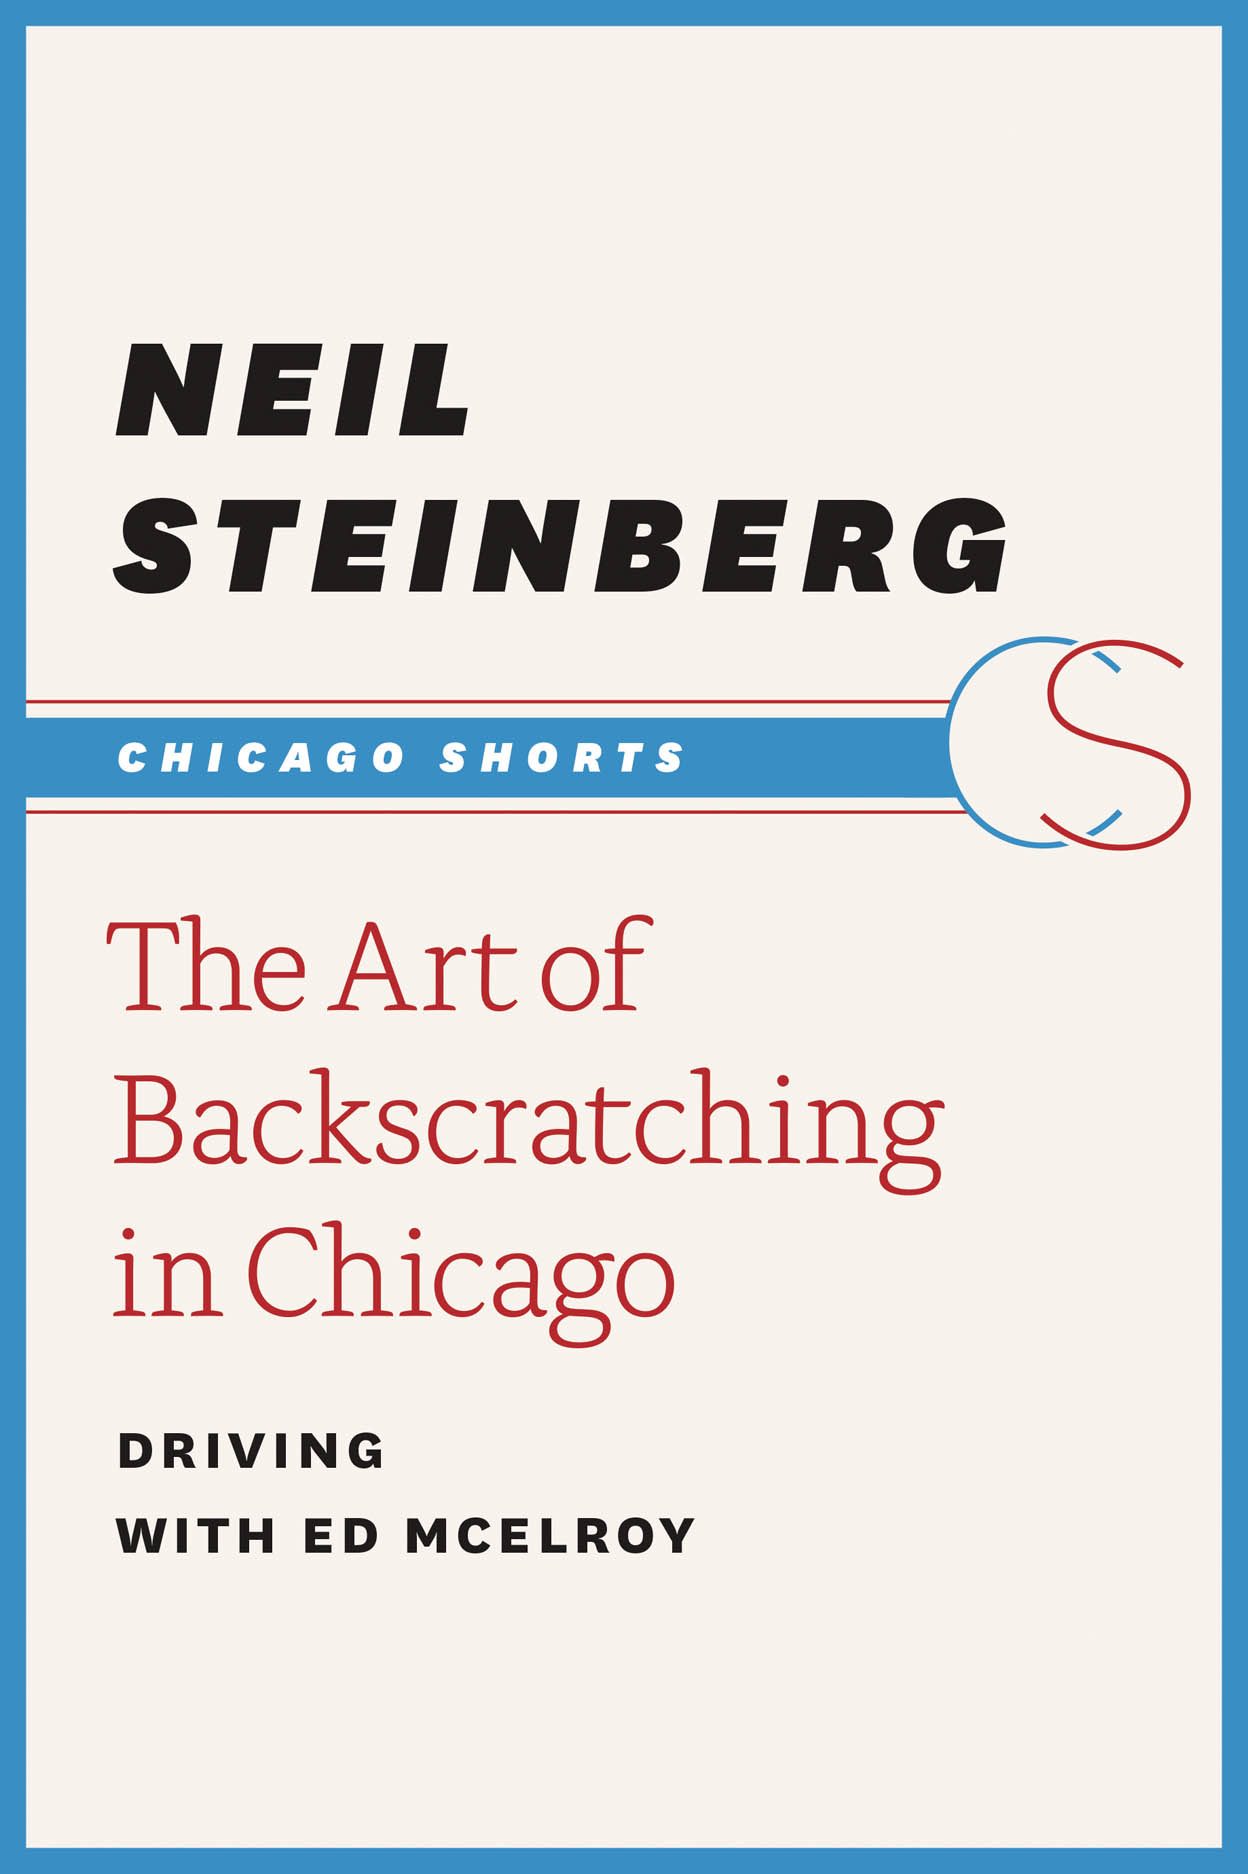 The Art of Backscratching in Chicago: Driving with Ed McElroy